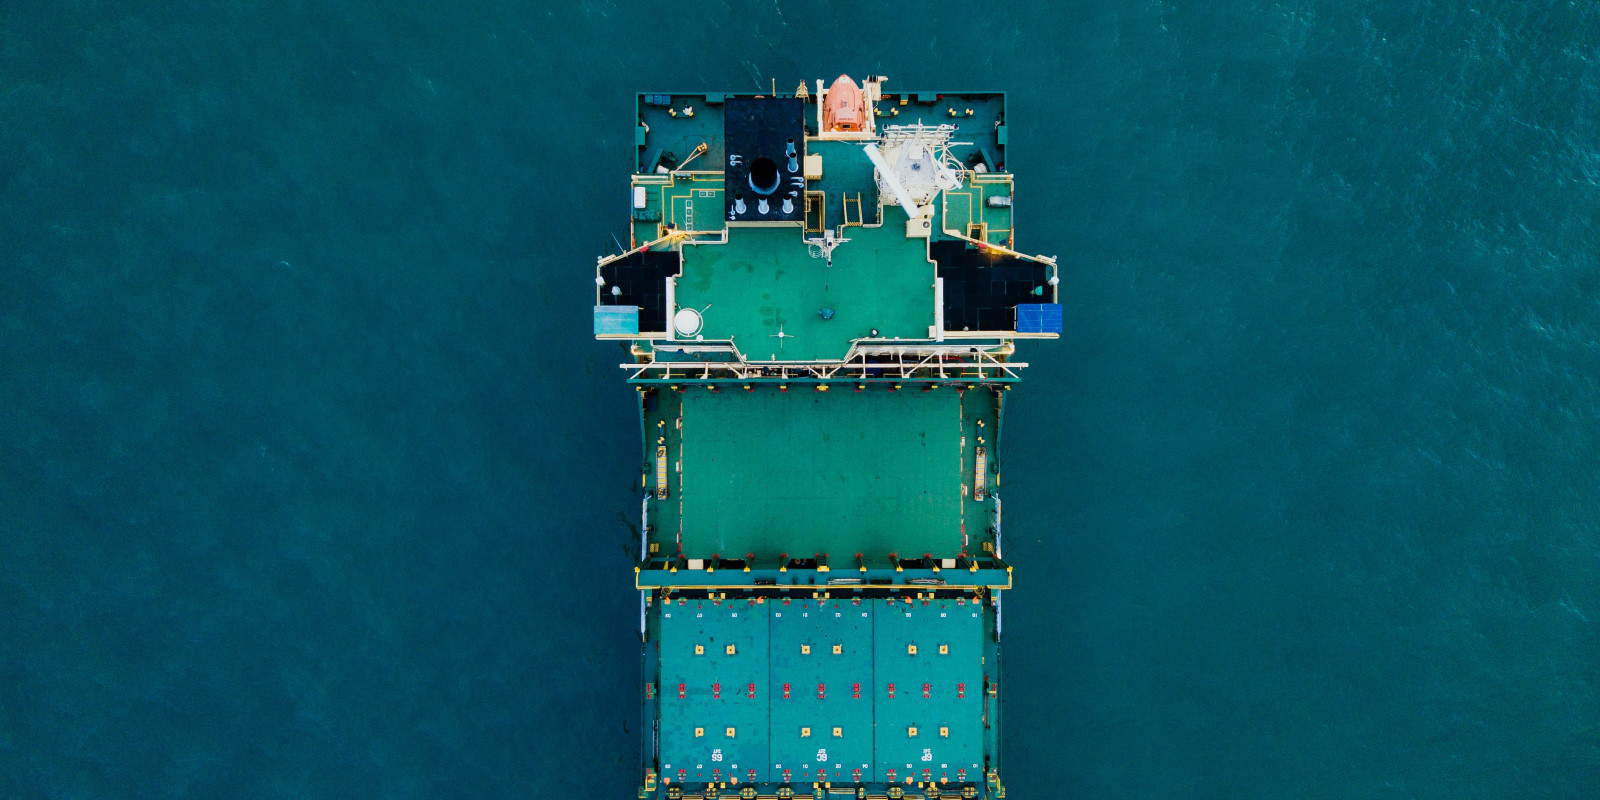 Aerial view of cargo freight container ship